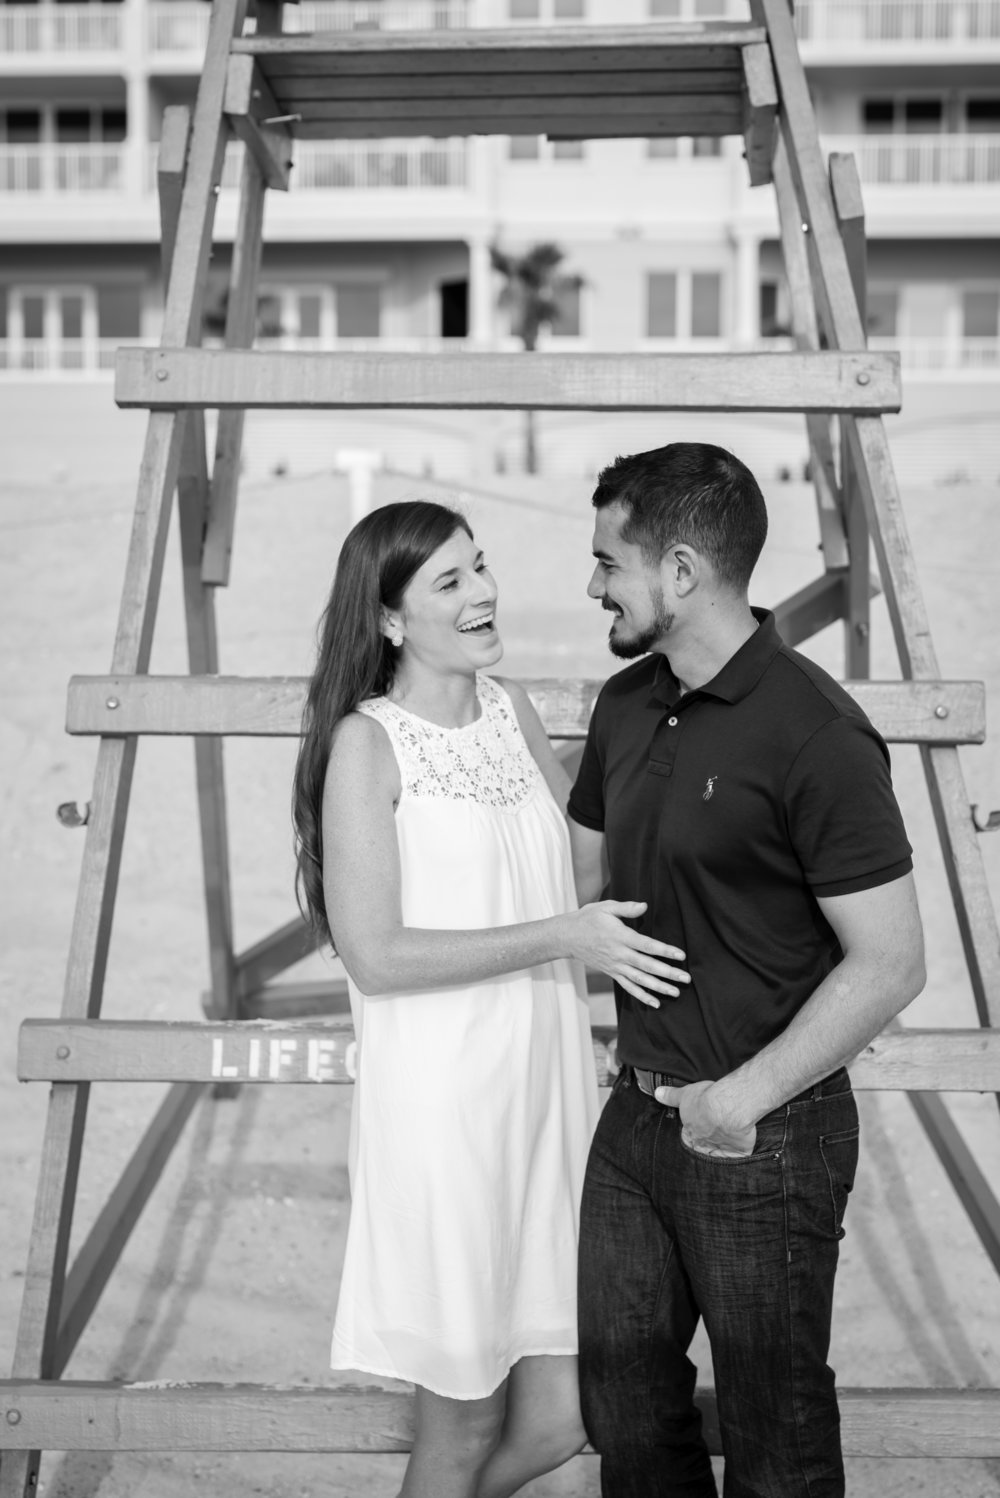 beachcouplephotography-kristingroverimages.jpg